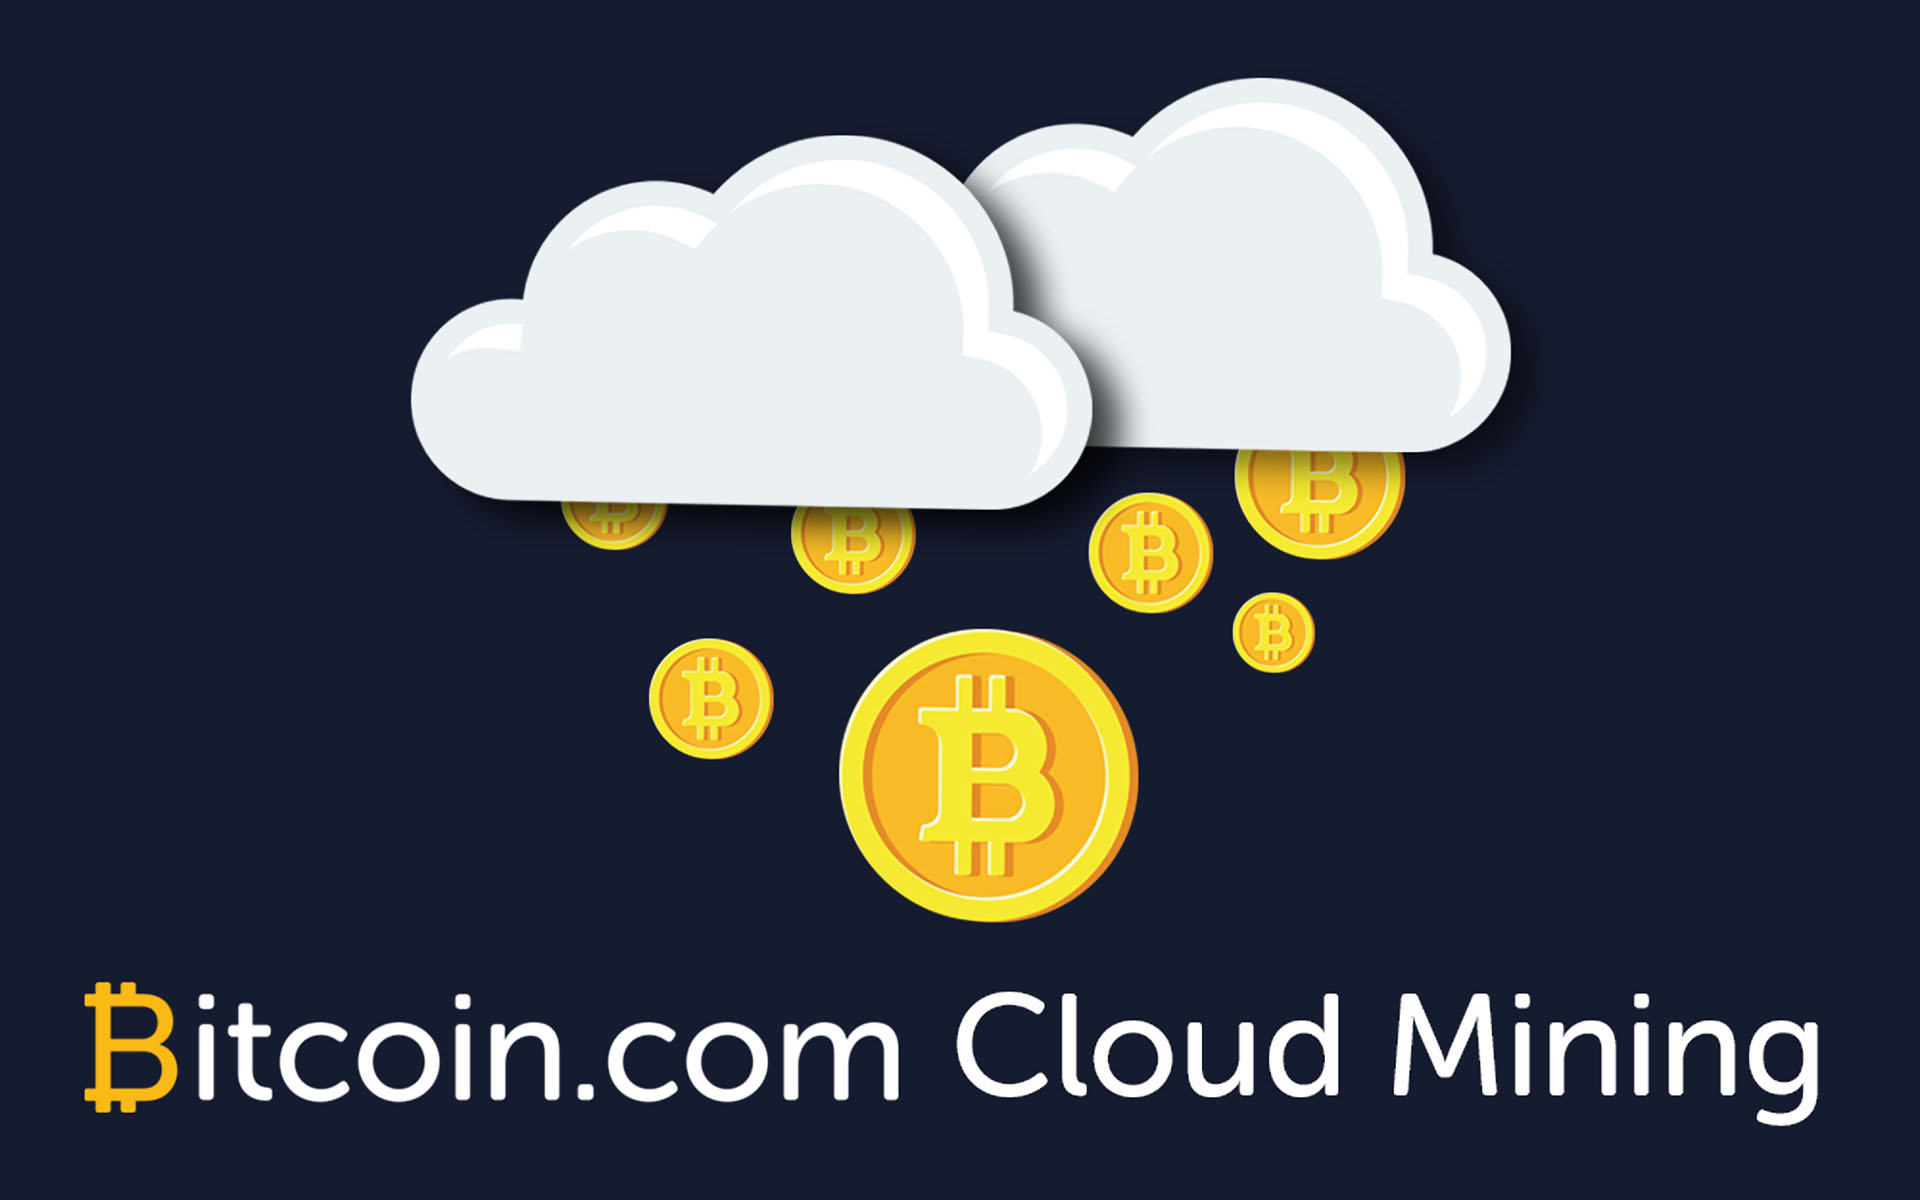 Bitcoin.com Partners with North America's Largest Mining Farm, Adds World Class Cloud Mining to Offerings